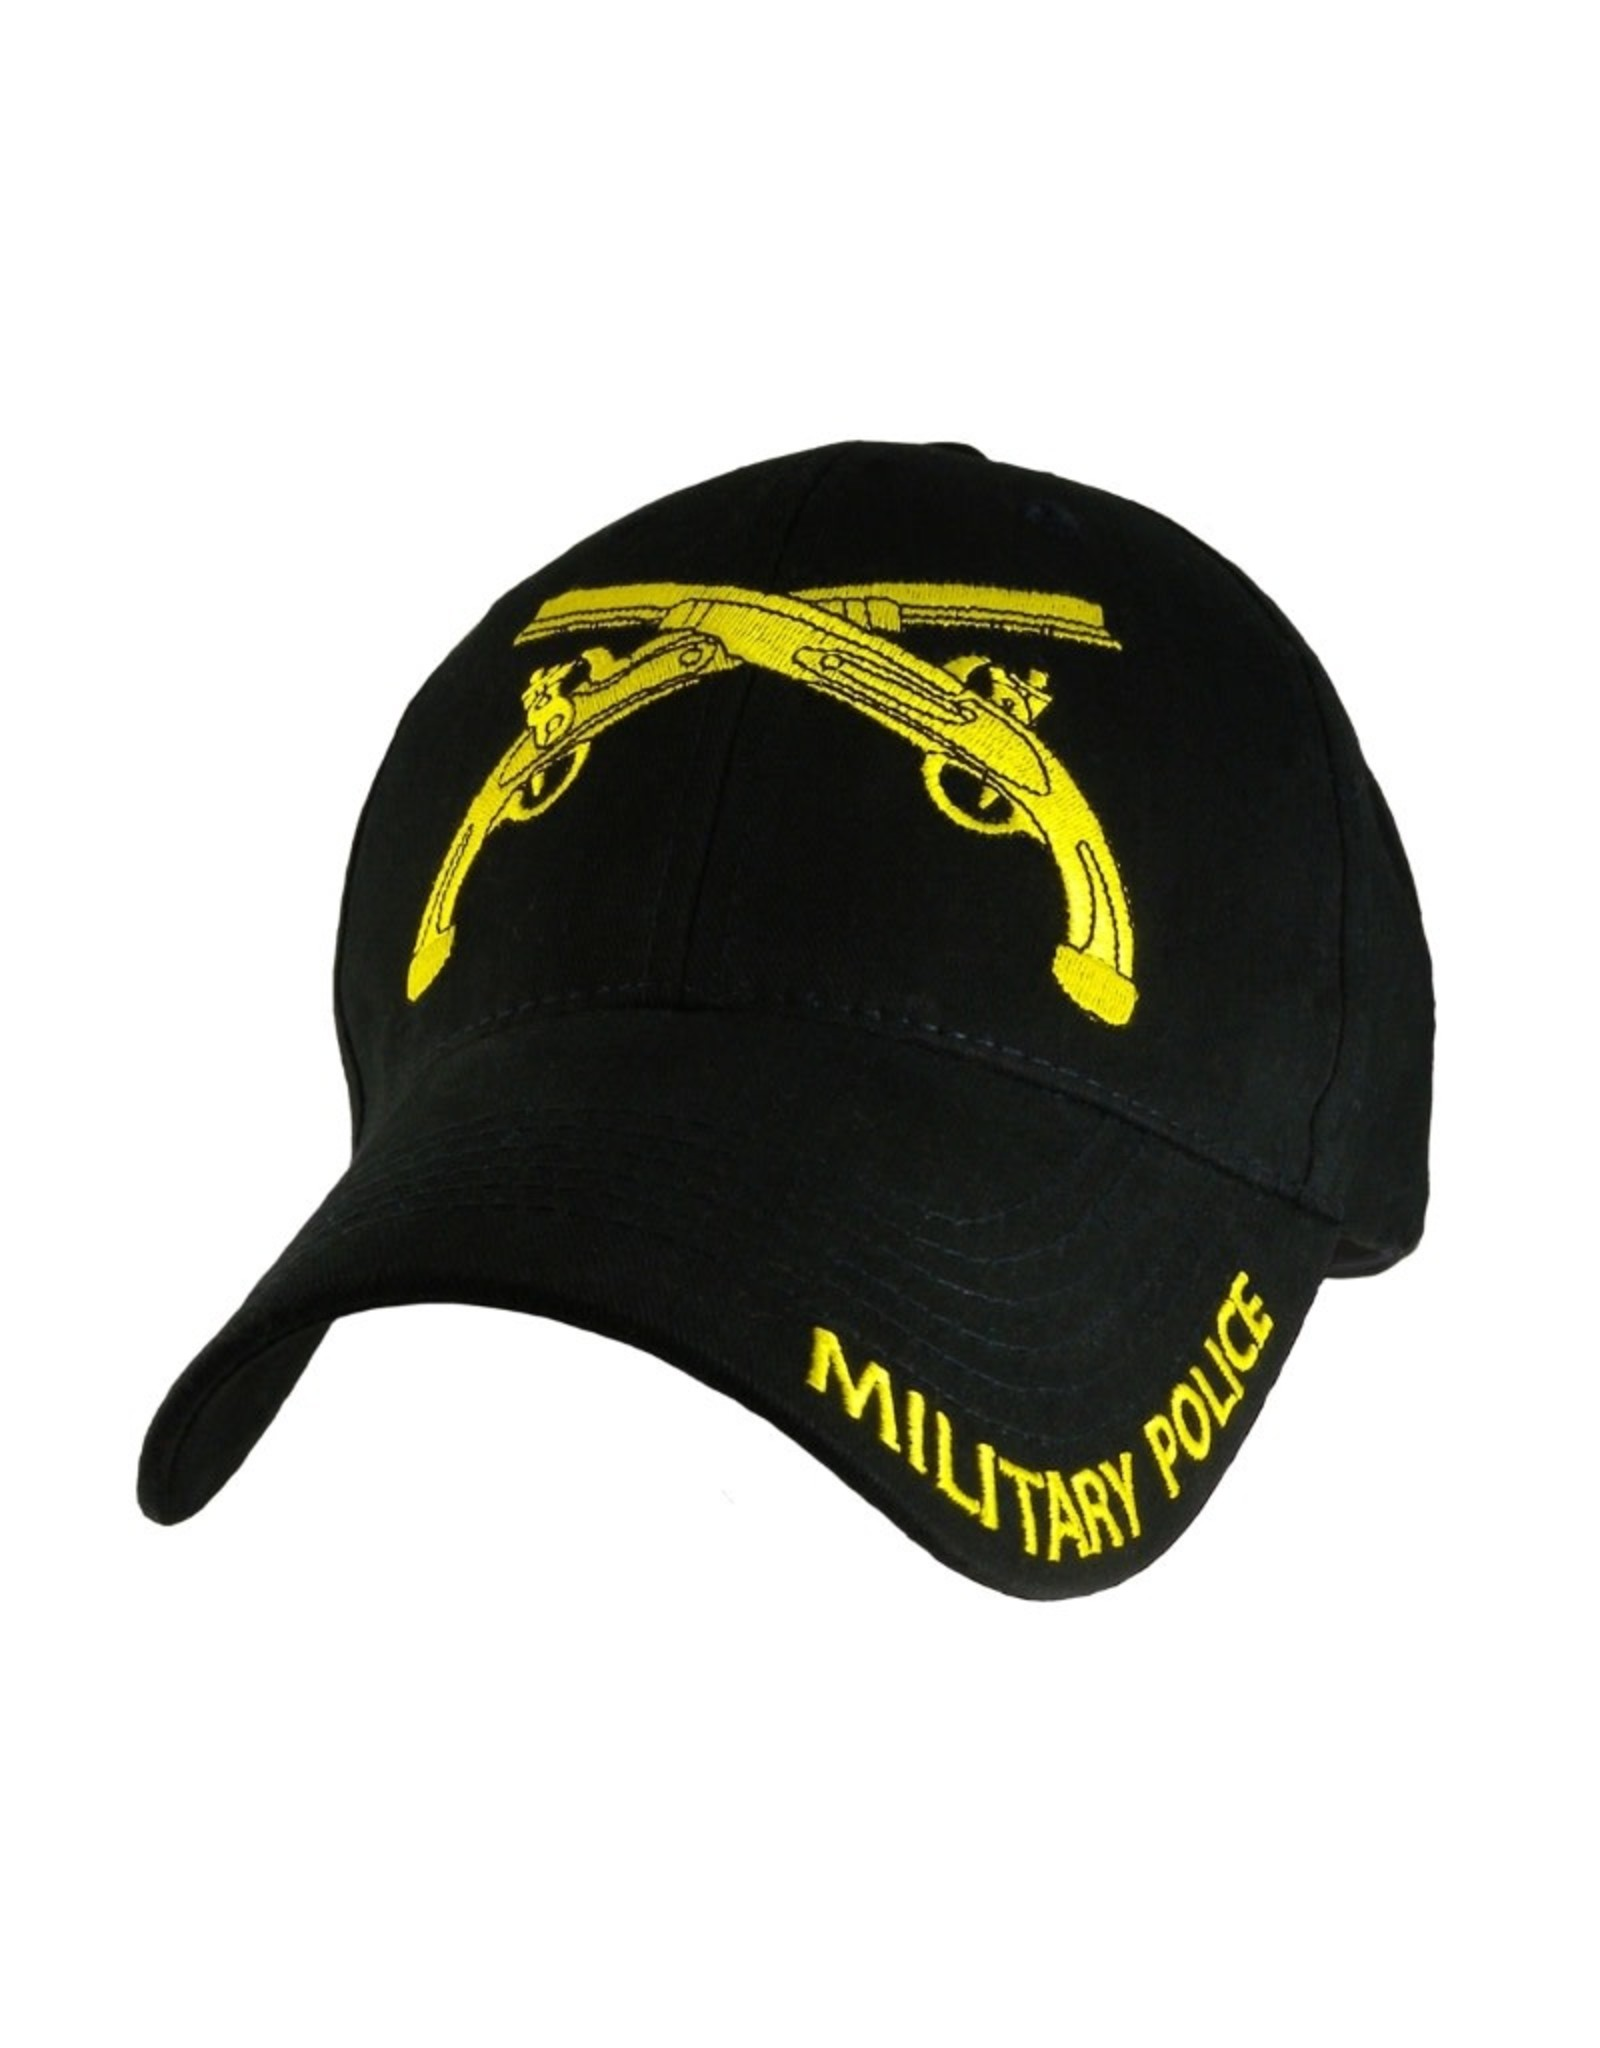 MidMil Army Military Police Hat with Emblem Black